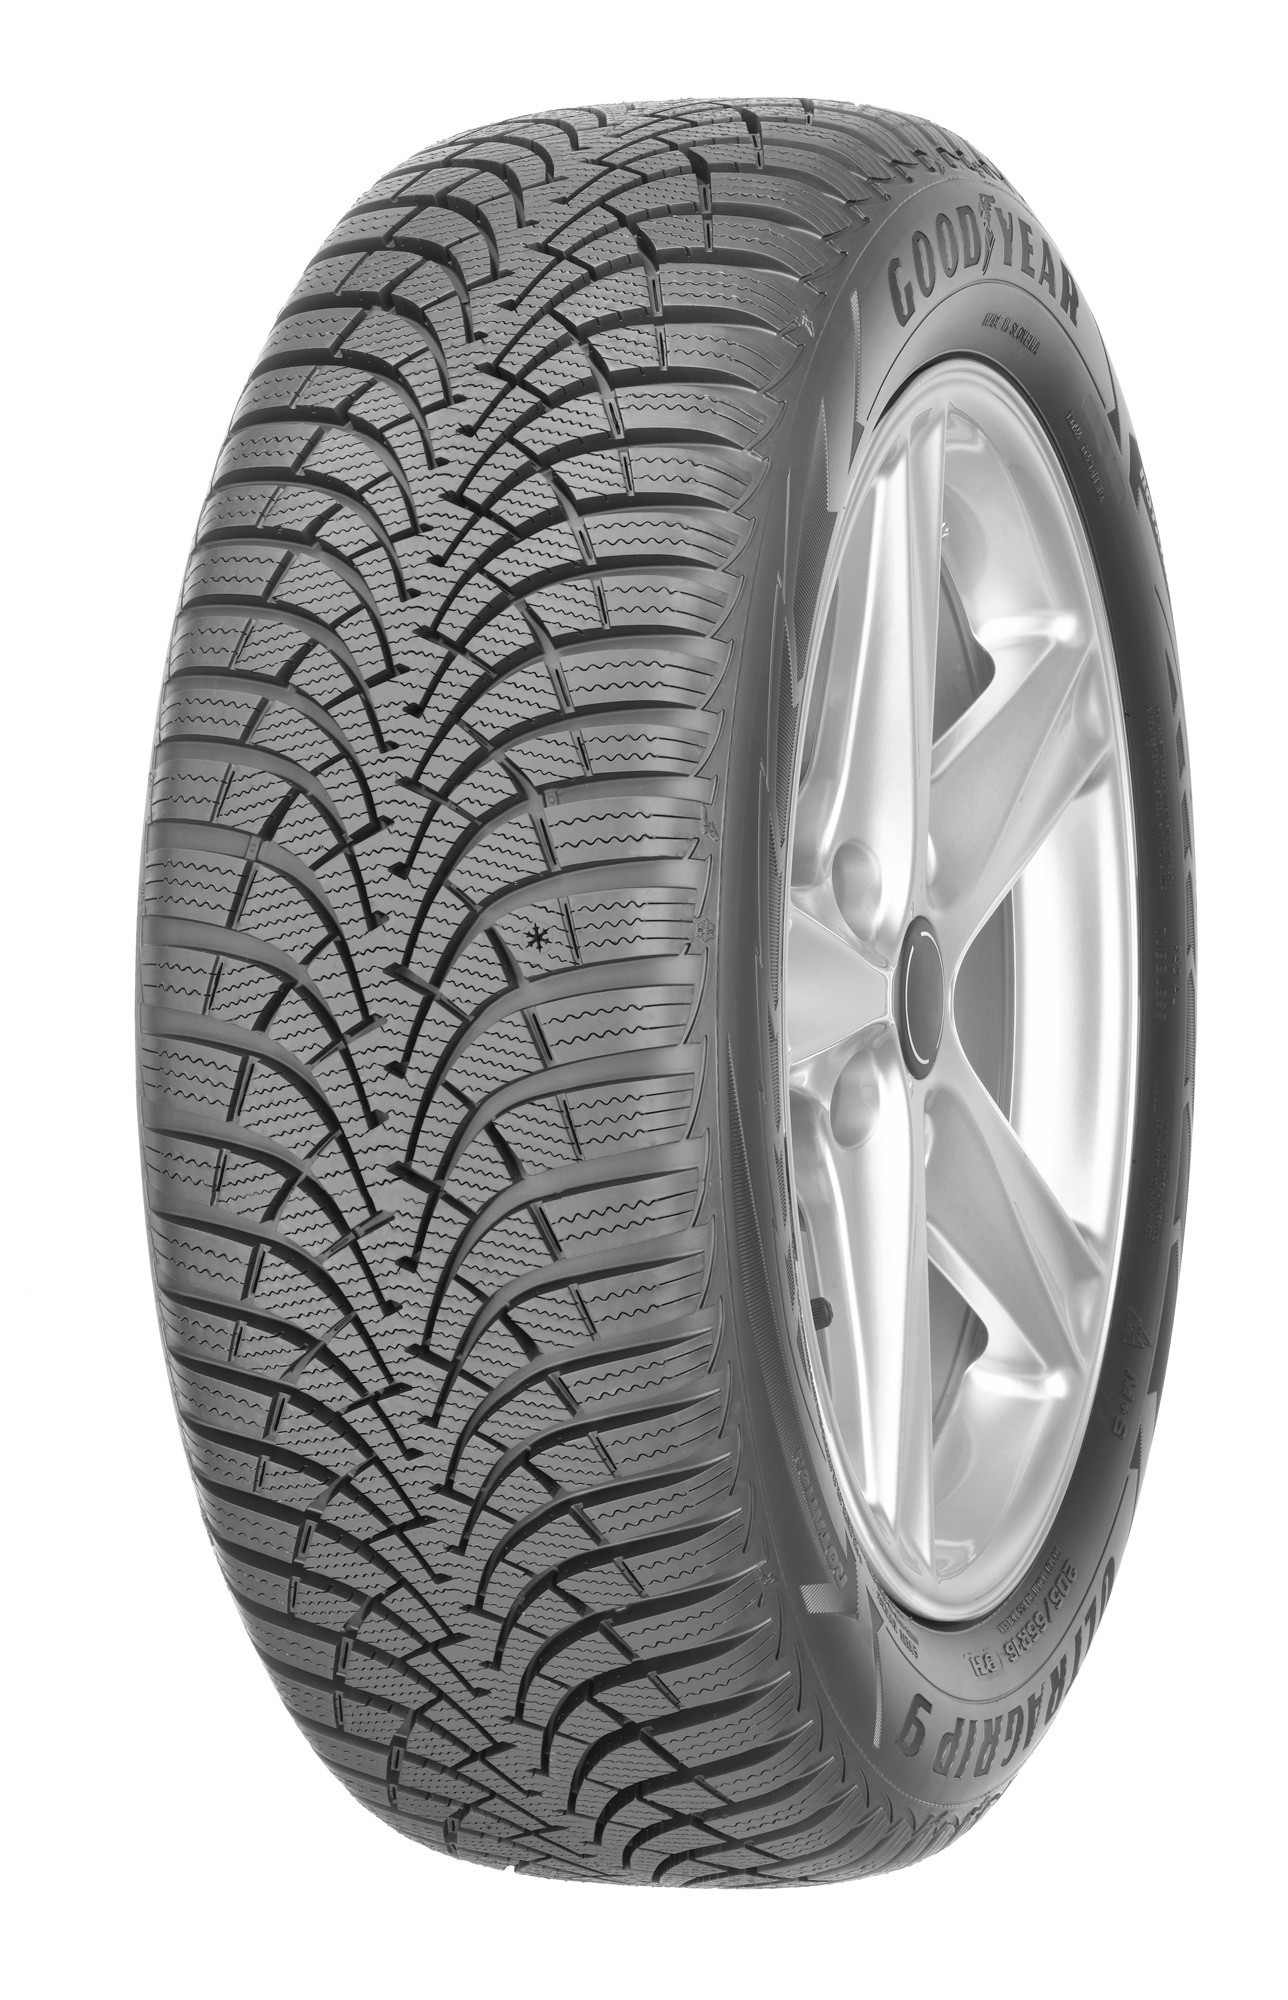 Anvelopa Iarna 165/70R14 85T Goodyear Ultra Grip 9 Ms Xl